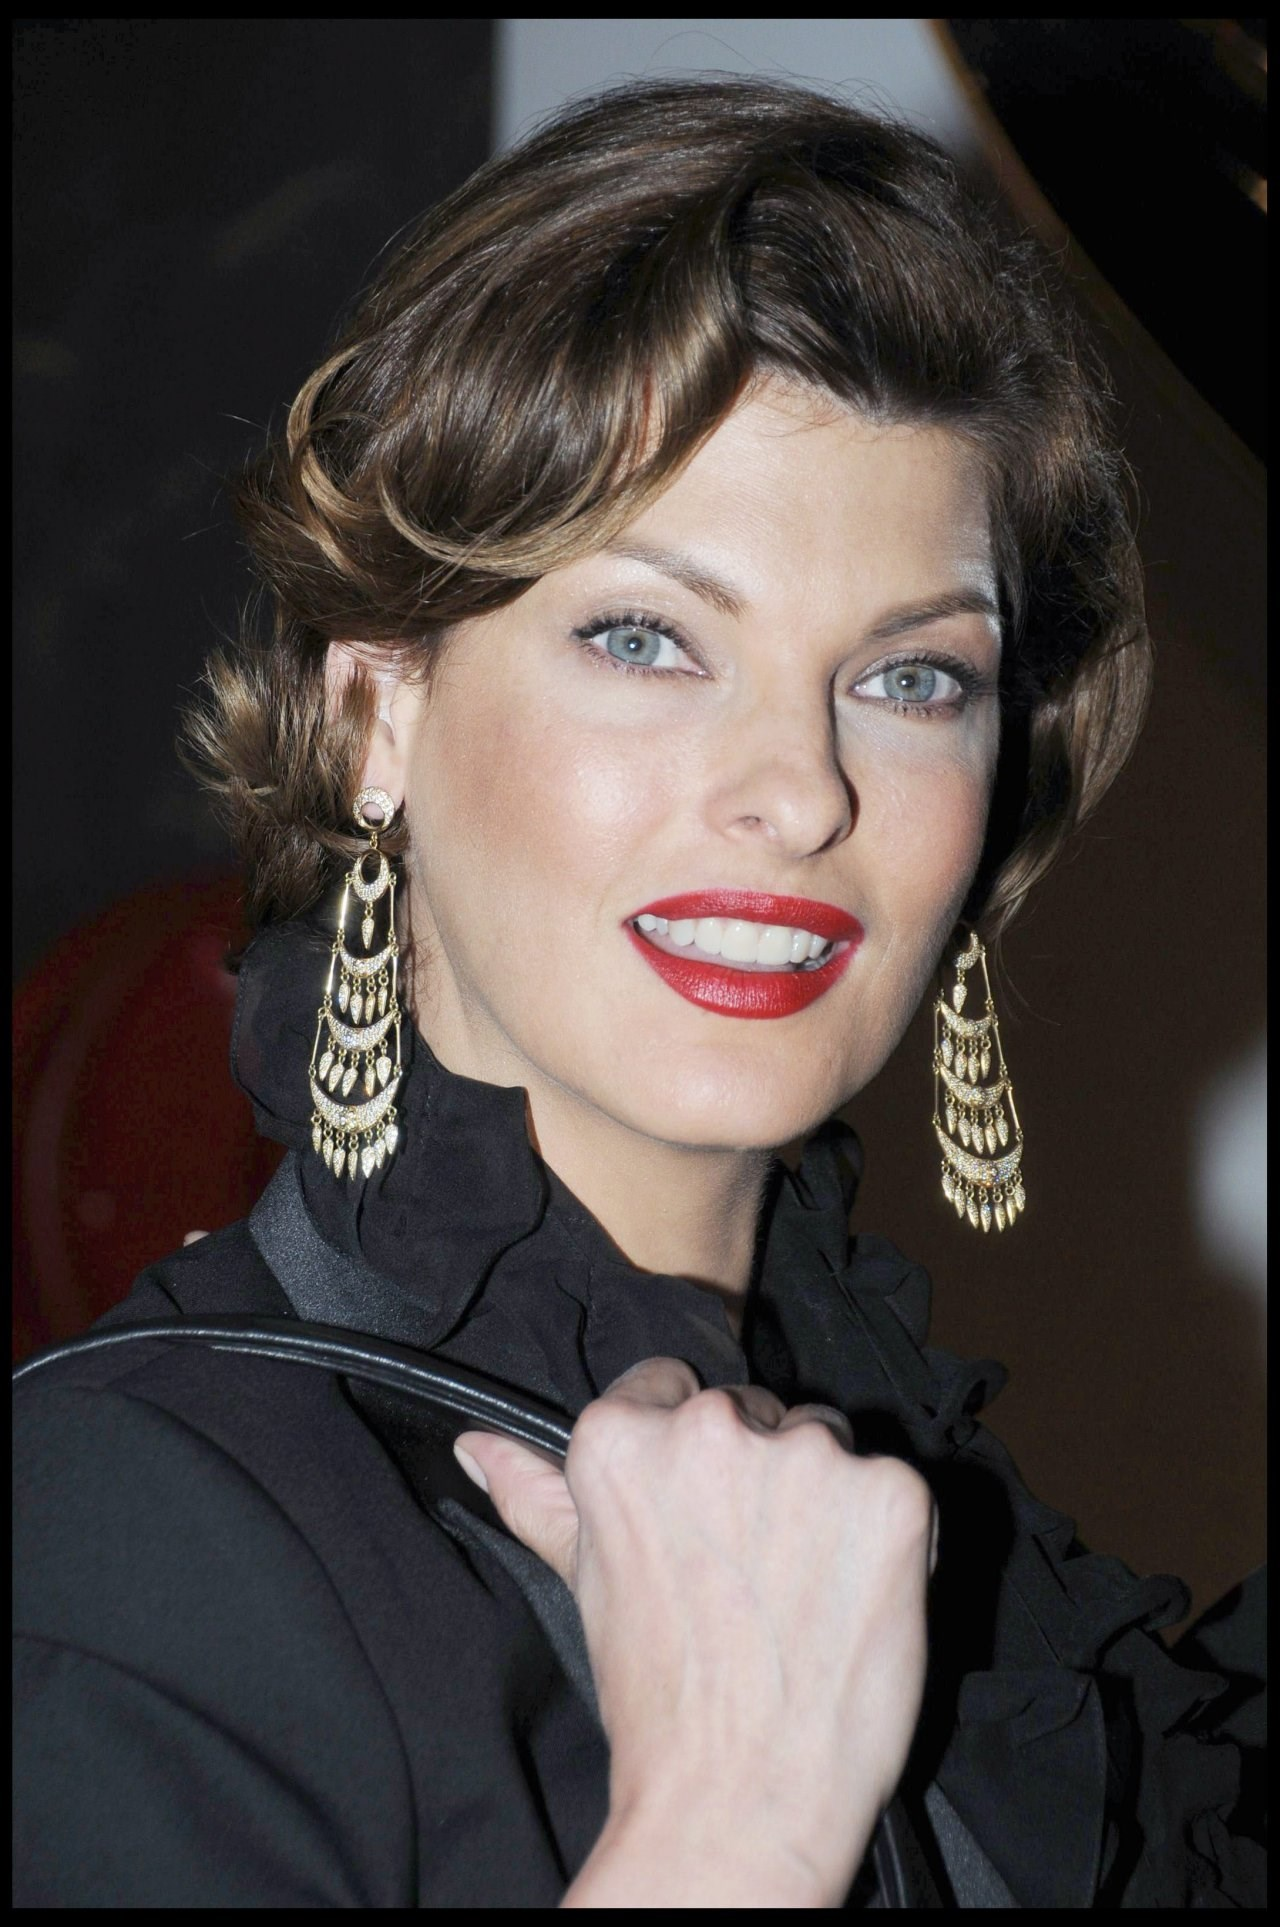 Linda Evangelista | Known people - famous people news and ...